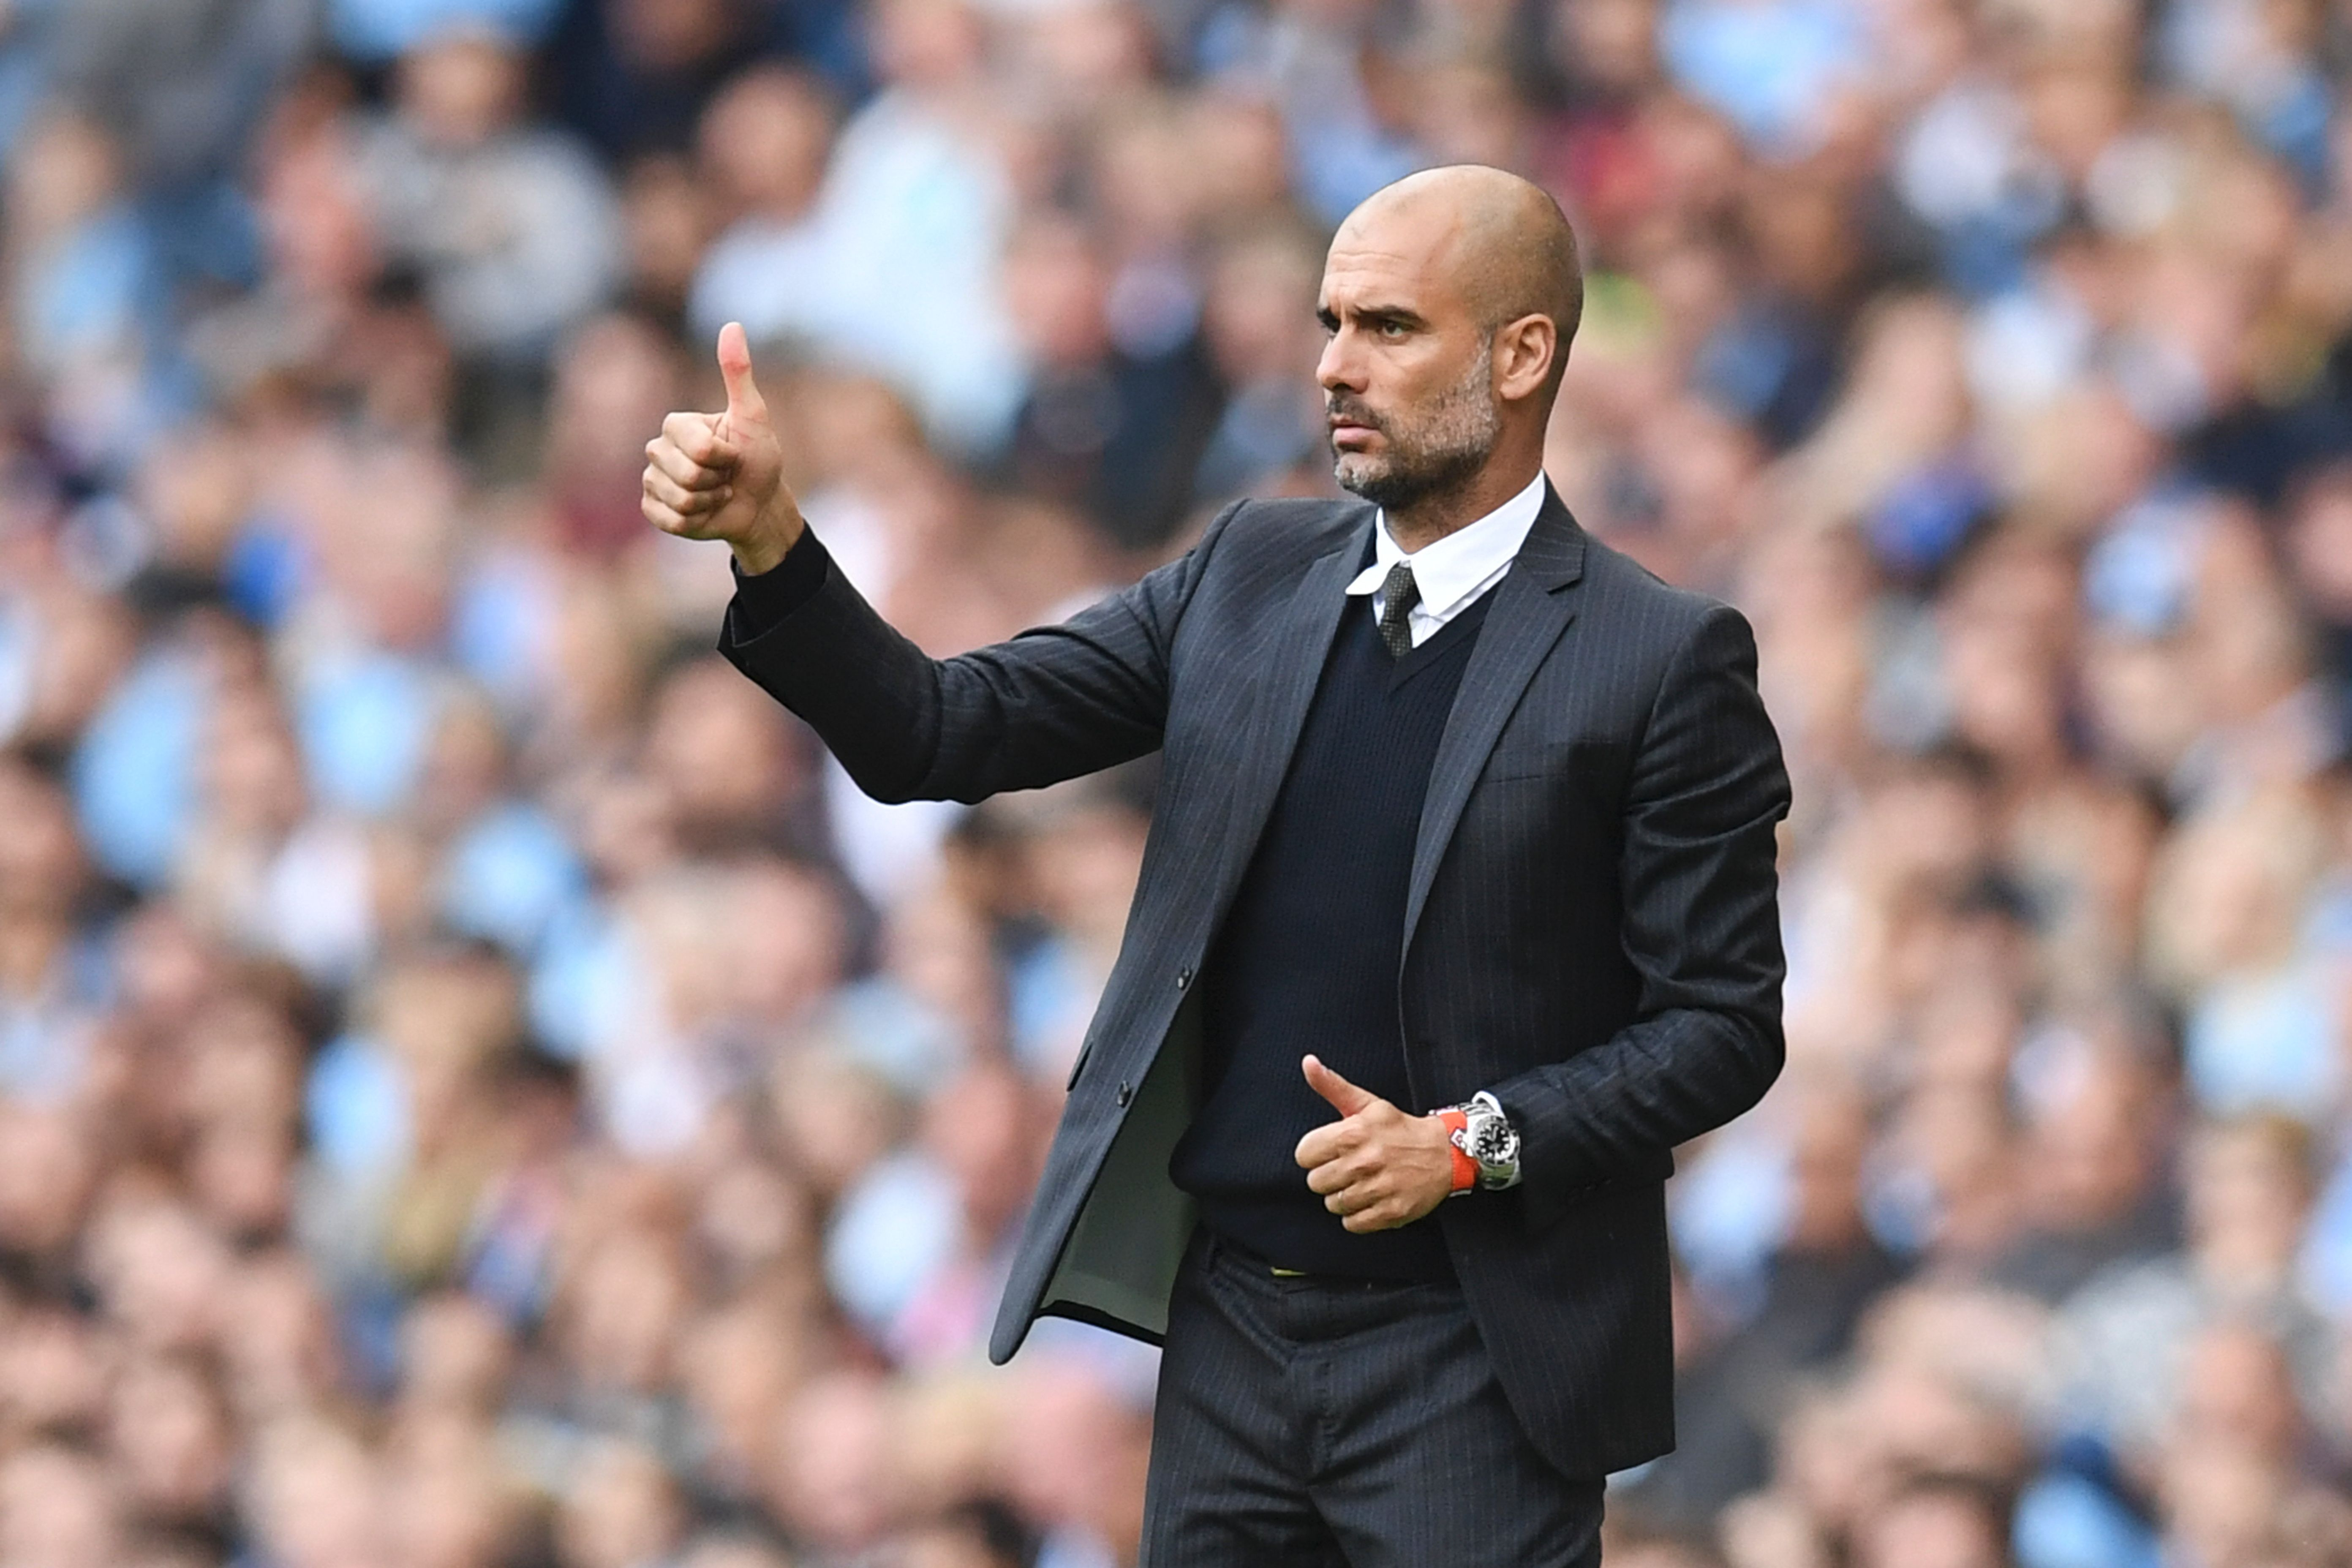 Pep Guardiola could be preparing to axe some of Manchester City's biggest stars